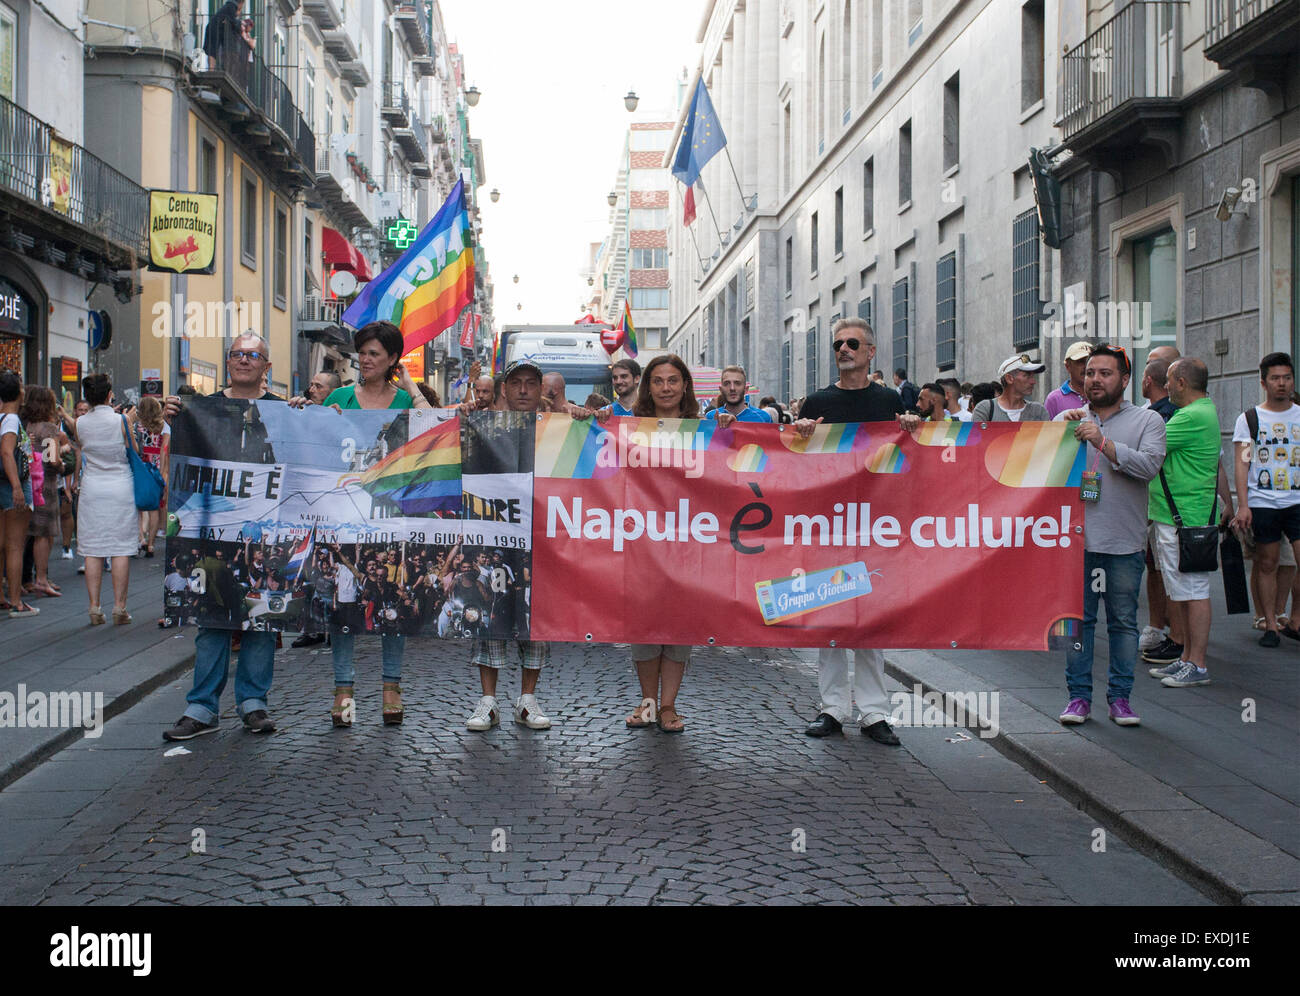 Thousand of heterosexuals, lesbians, gays, bisexuals and transgenders proudly join the Mediterranean Pride of Naples. - Stock Image